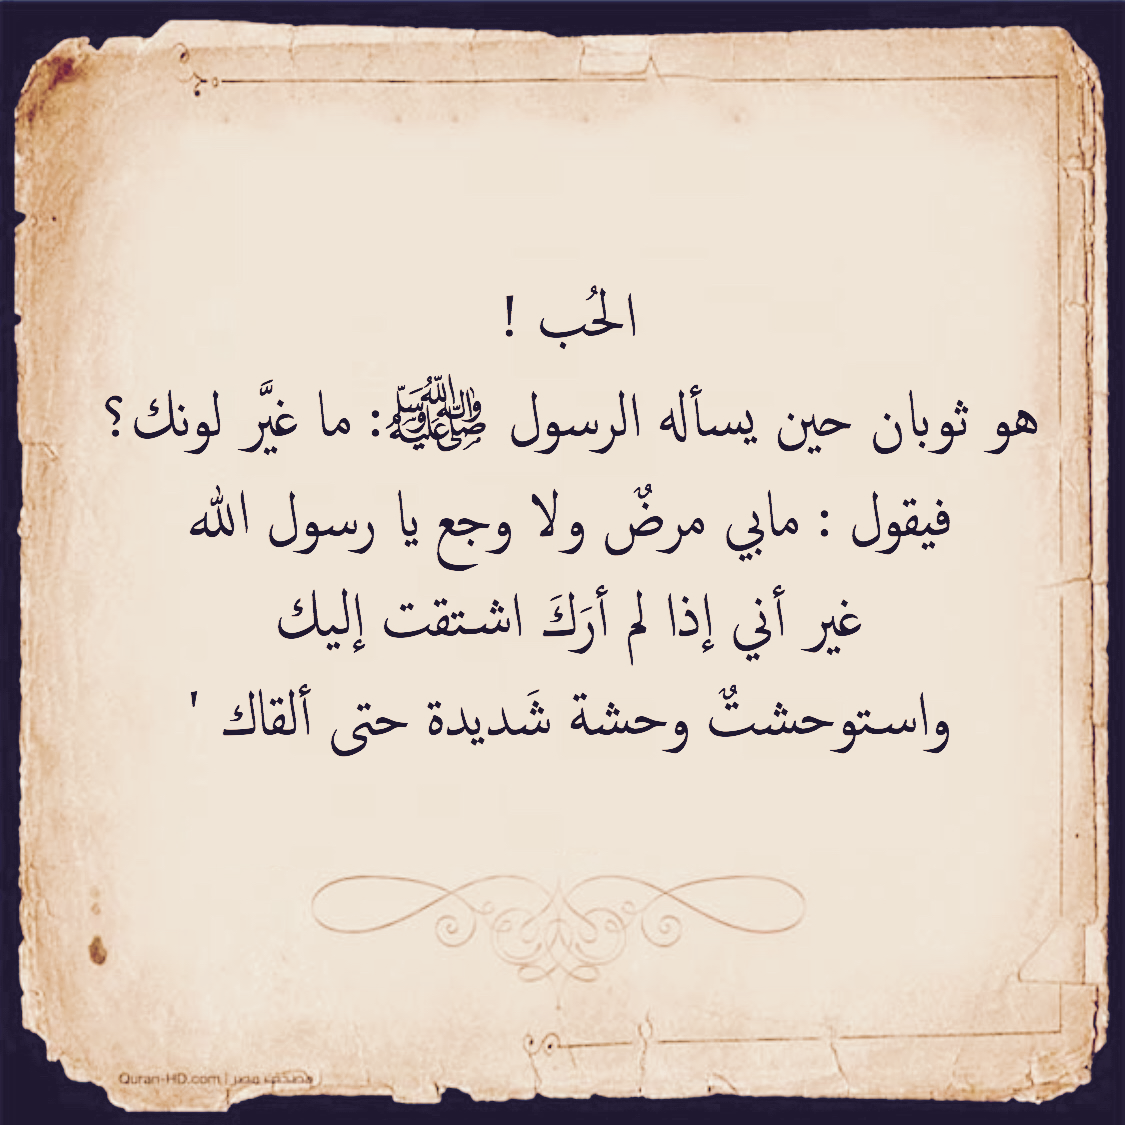 Pin By حمد البلوشي On إسلامية Quotes Arabic Quotes Arabic Calligraphy